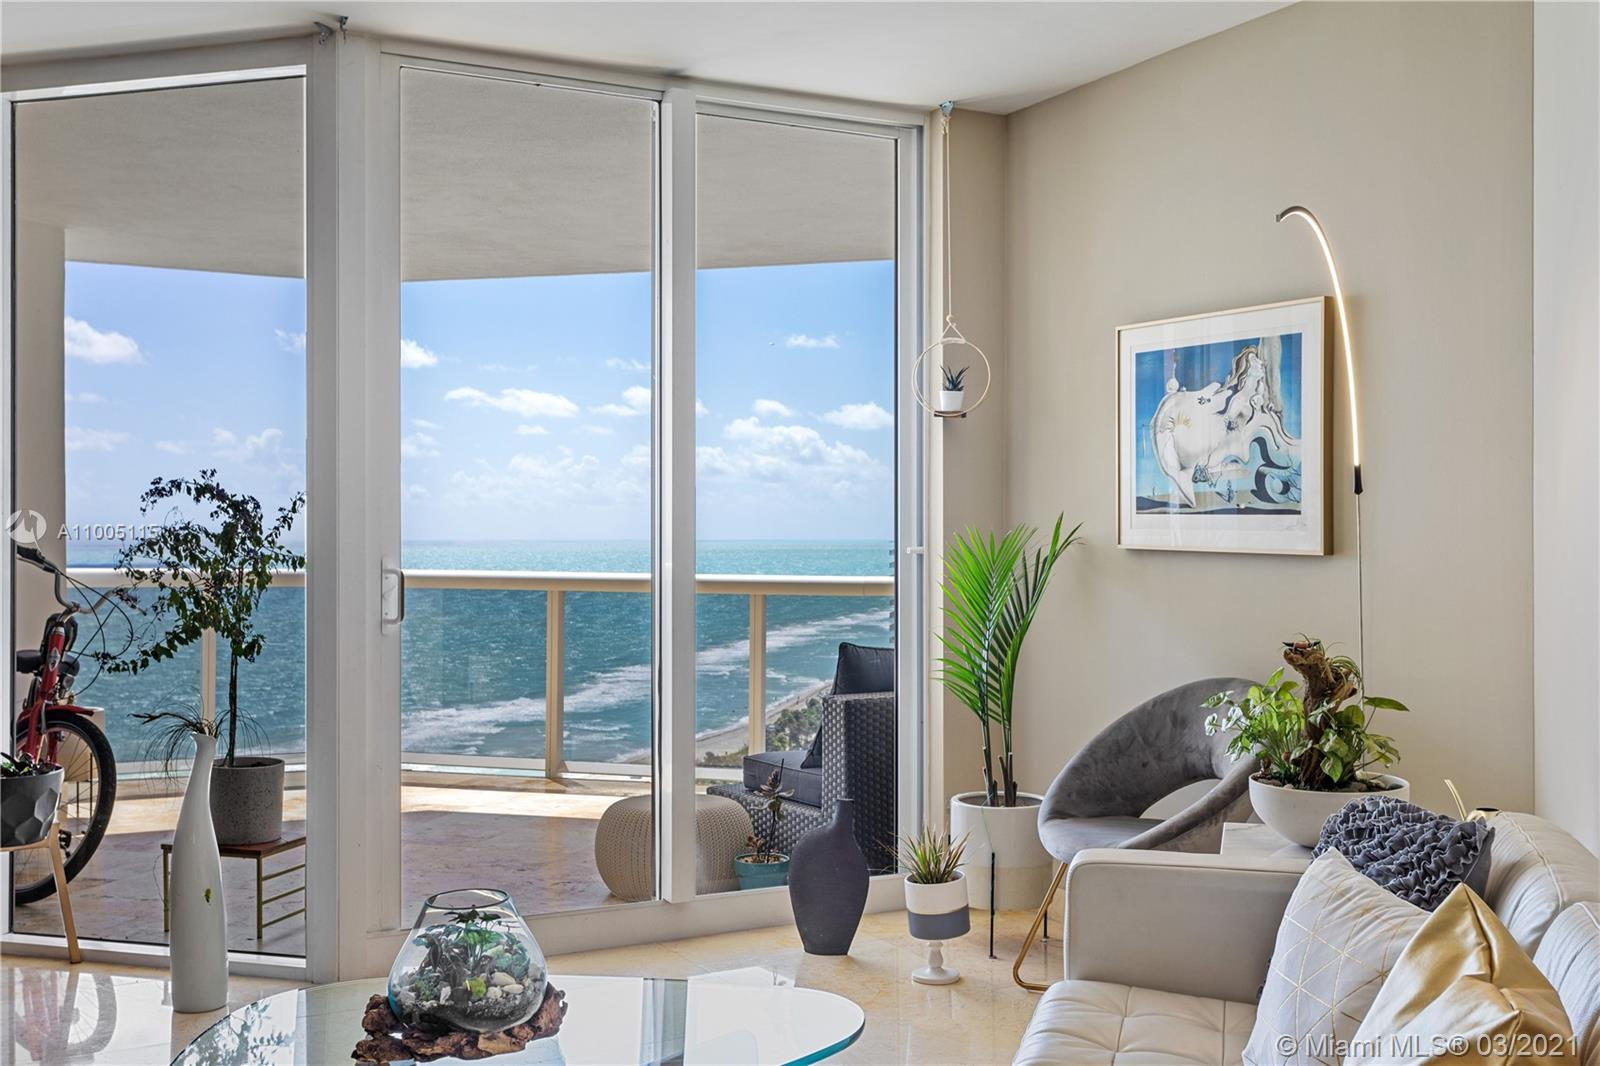 As you enter into this large Residence, you will Be Greeted w/Fantastic Views of the Beach, the Miami Skyline & Wide Bay. Floor-to-Ceiling Glass Sliding Doors open to an Expansive Private Balcony overlooking the Ocean & City. Large Open Kitchen with Stainless Steel Appliances, The  Main Bedroom w/ spacious custom built walk-in closet, Marble Bath w/ Jacuzzi & Separate Shower. The Prestigious Green Diamond Condo Offers Superb Amenities & Services. Enjoy Luxury Beachfront Living with Five-Star Resort-Style Amenities.